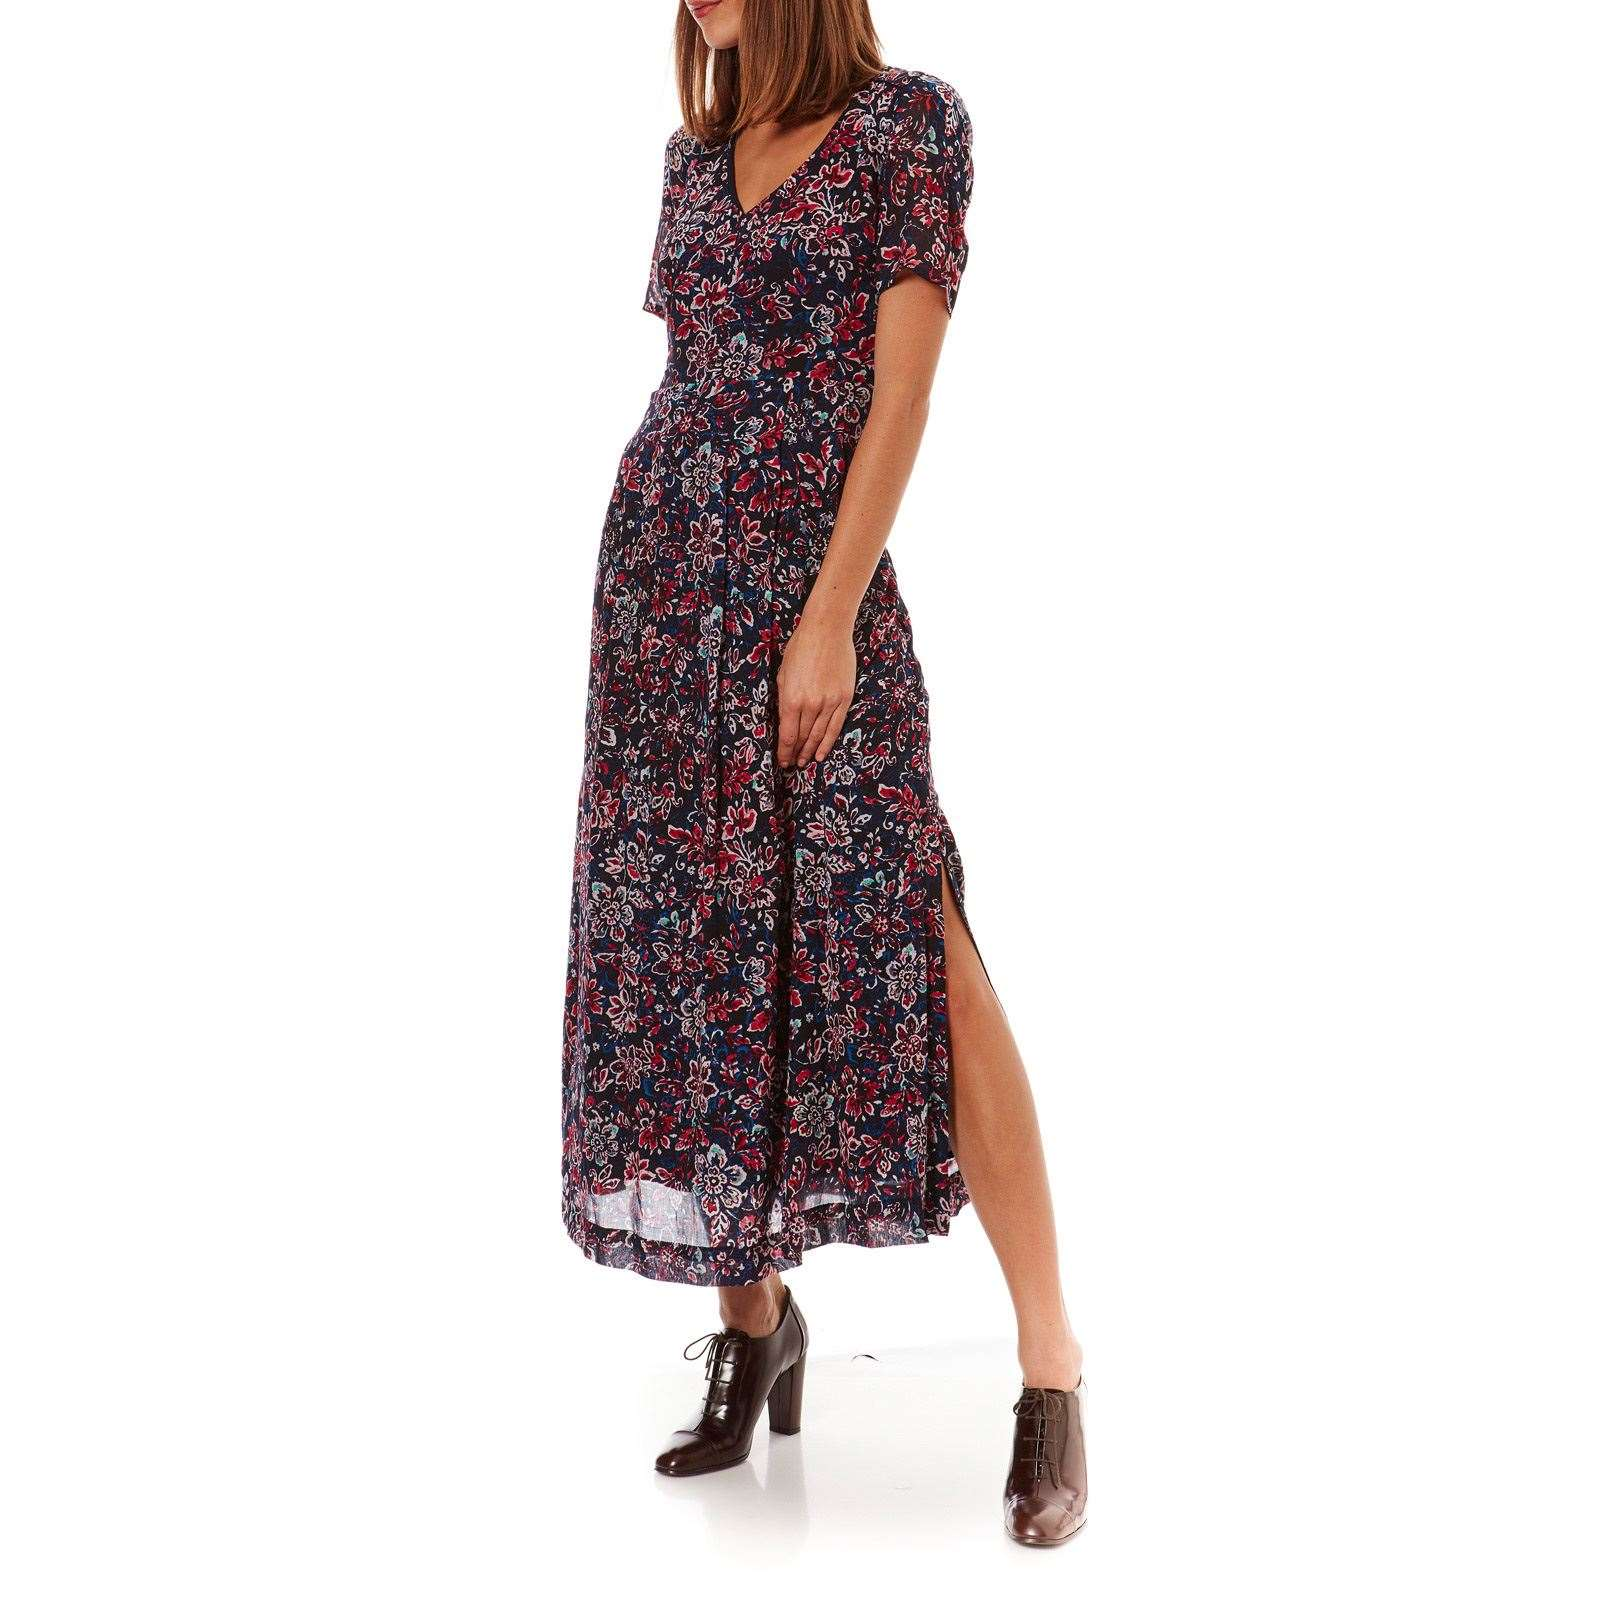 Exceptionnel Caroll Maryline - Robe longue - multicolore | Brandalley IM15